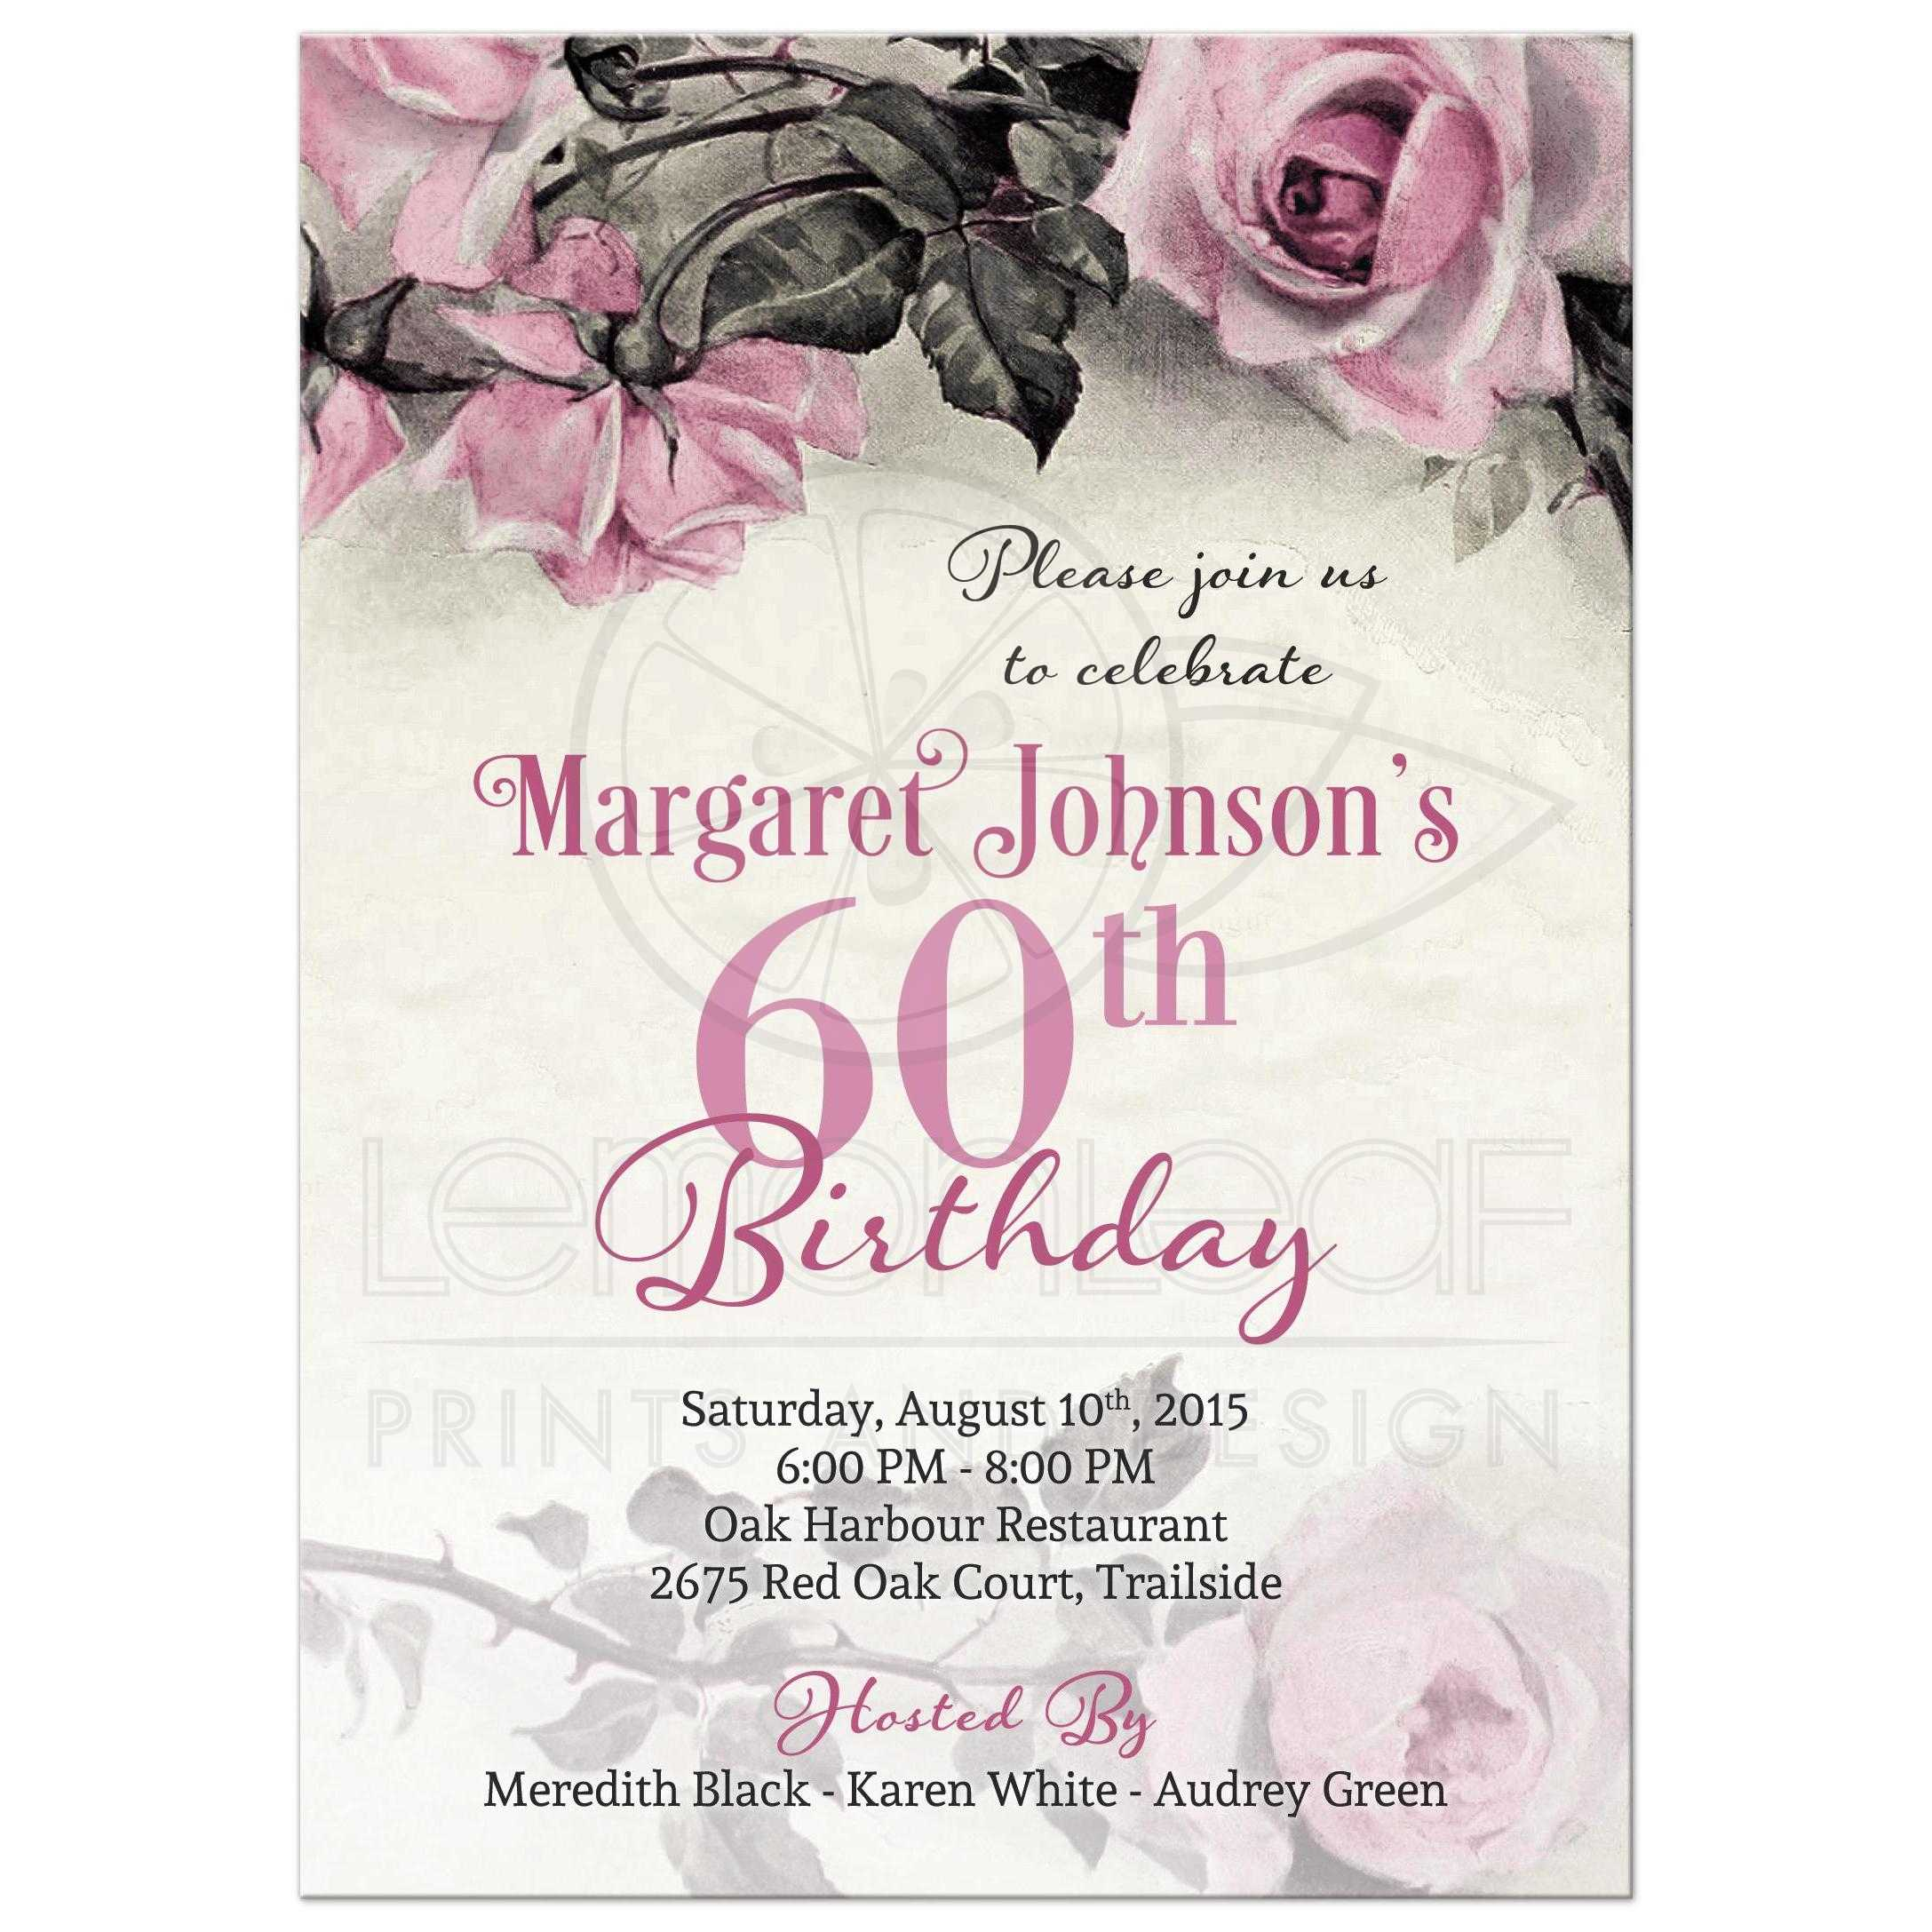 60th Birthday Invitation | Vintage Pink Grey Rose